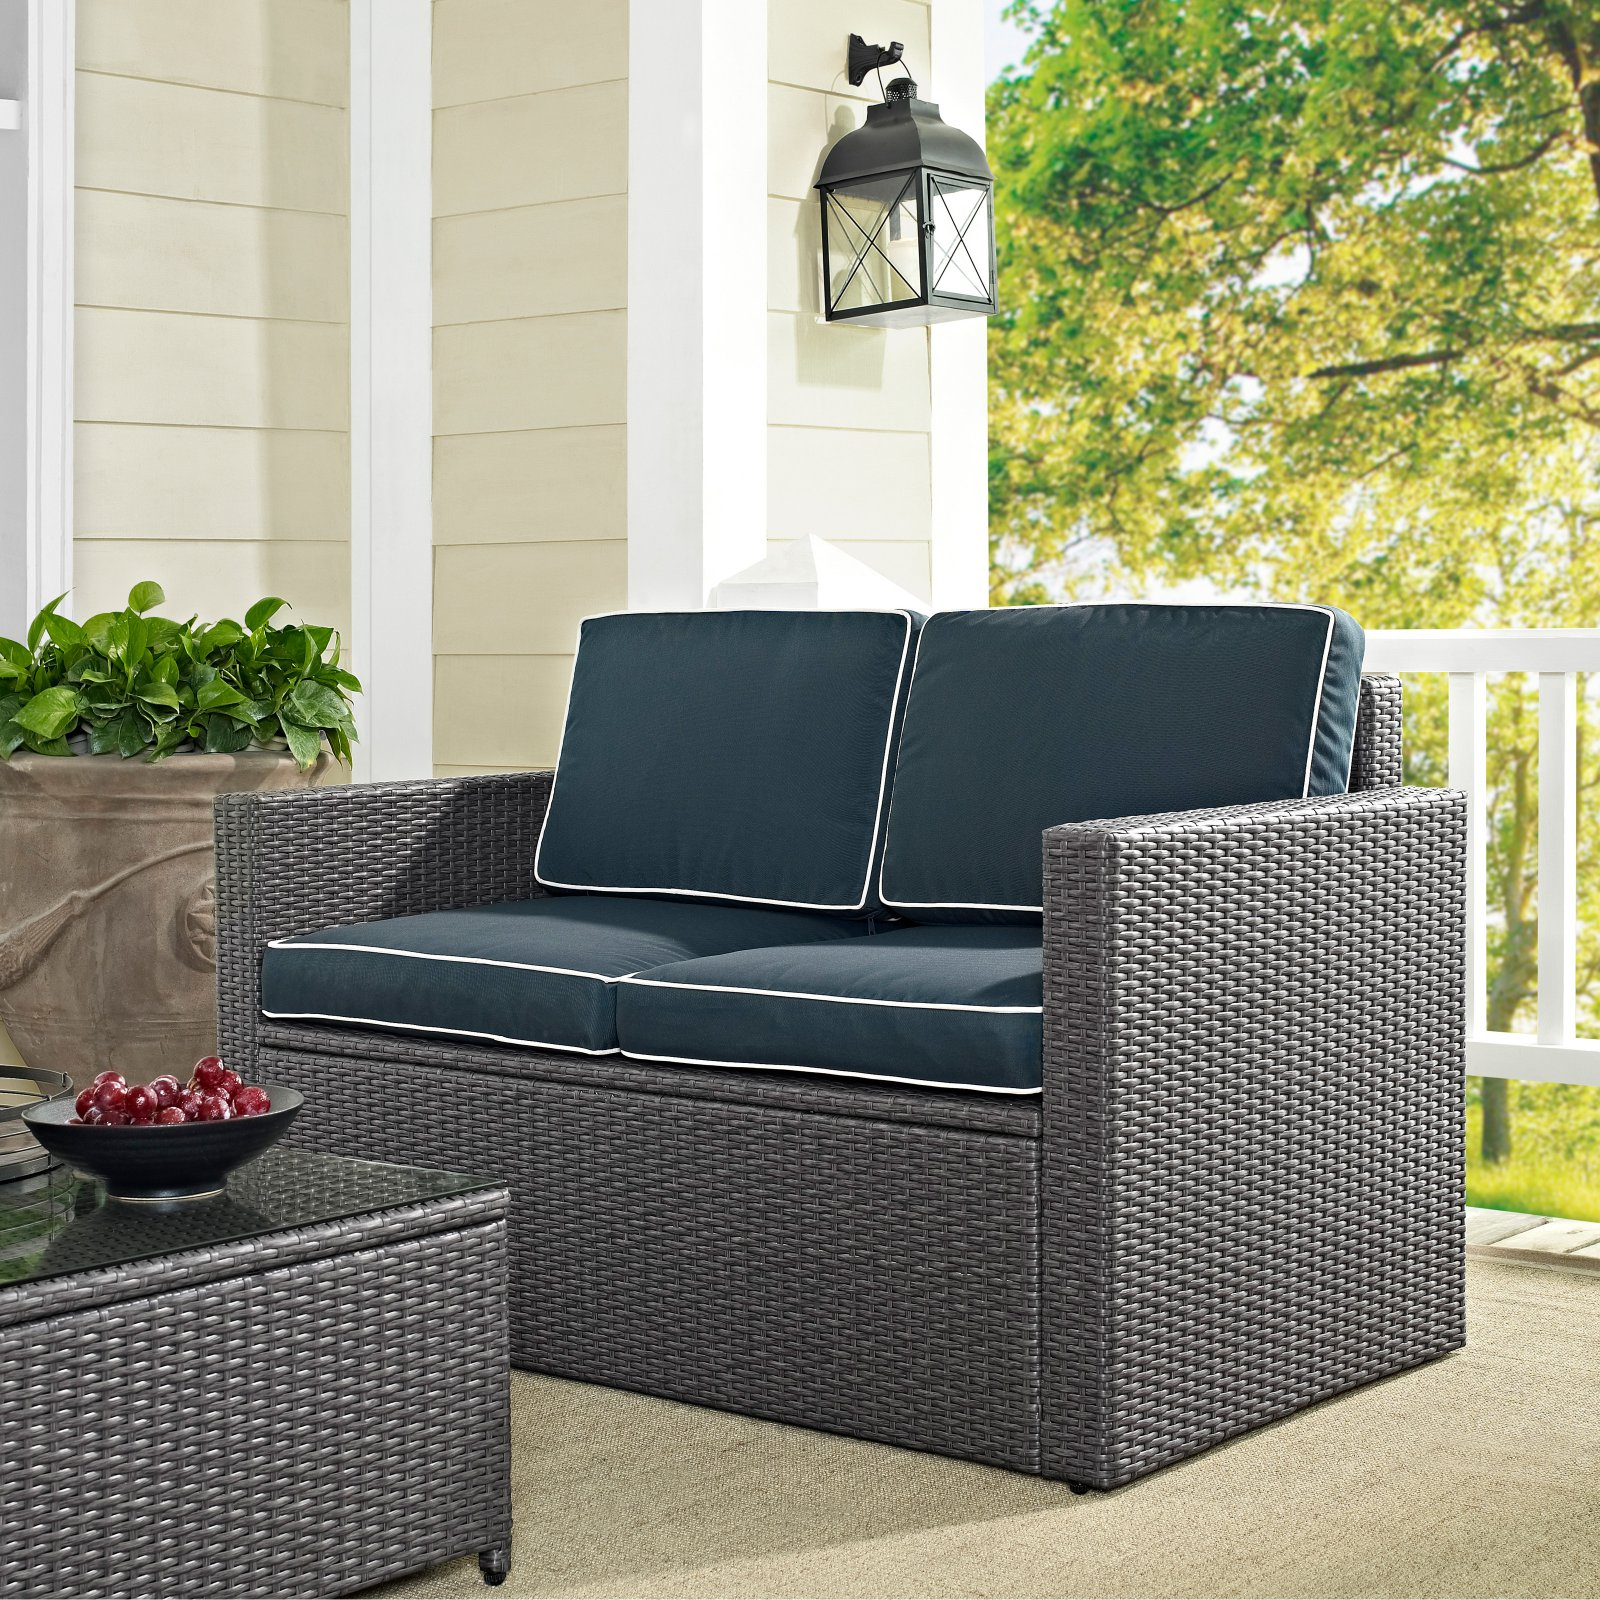 Recent Crosley Furniture Palm Harbor All Weather Wicker Outdoor In Mendelson Loveseats With Cushion (View 18 of 20)